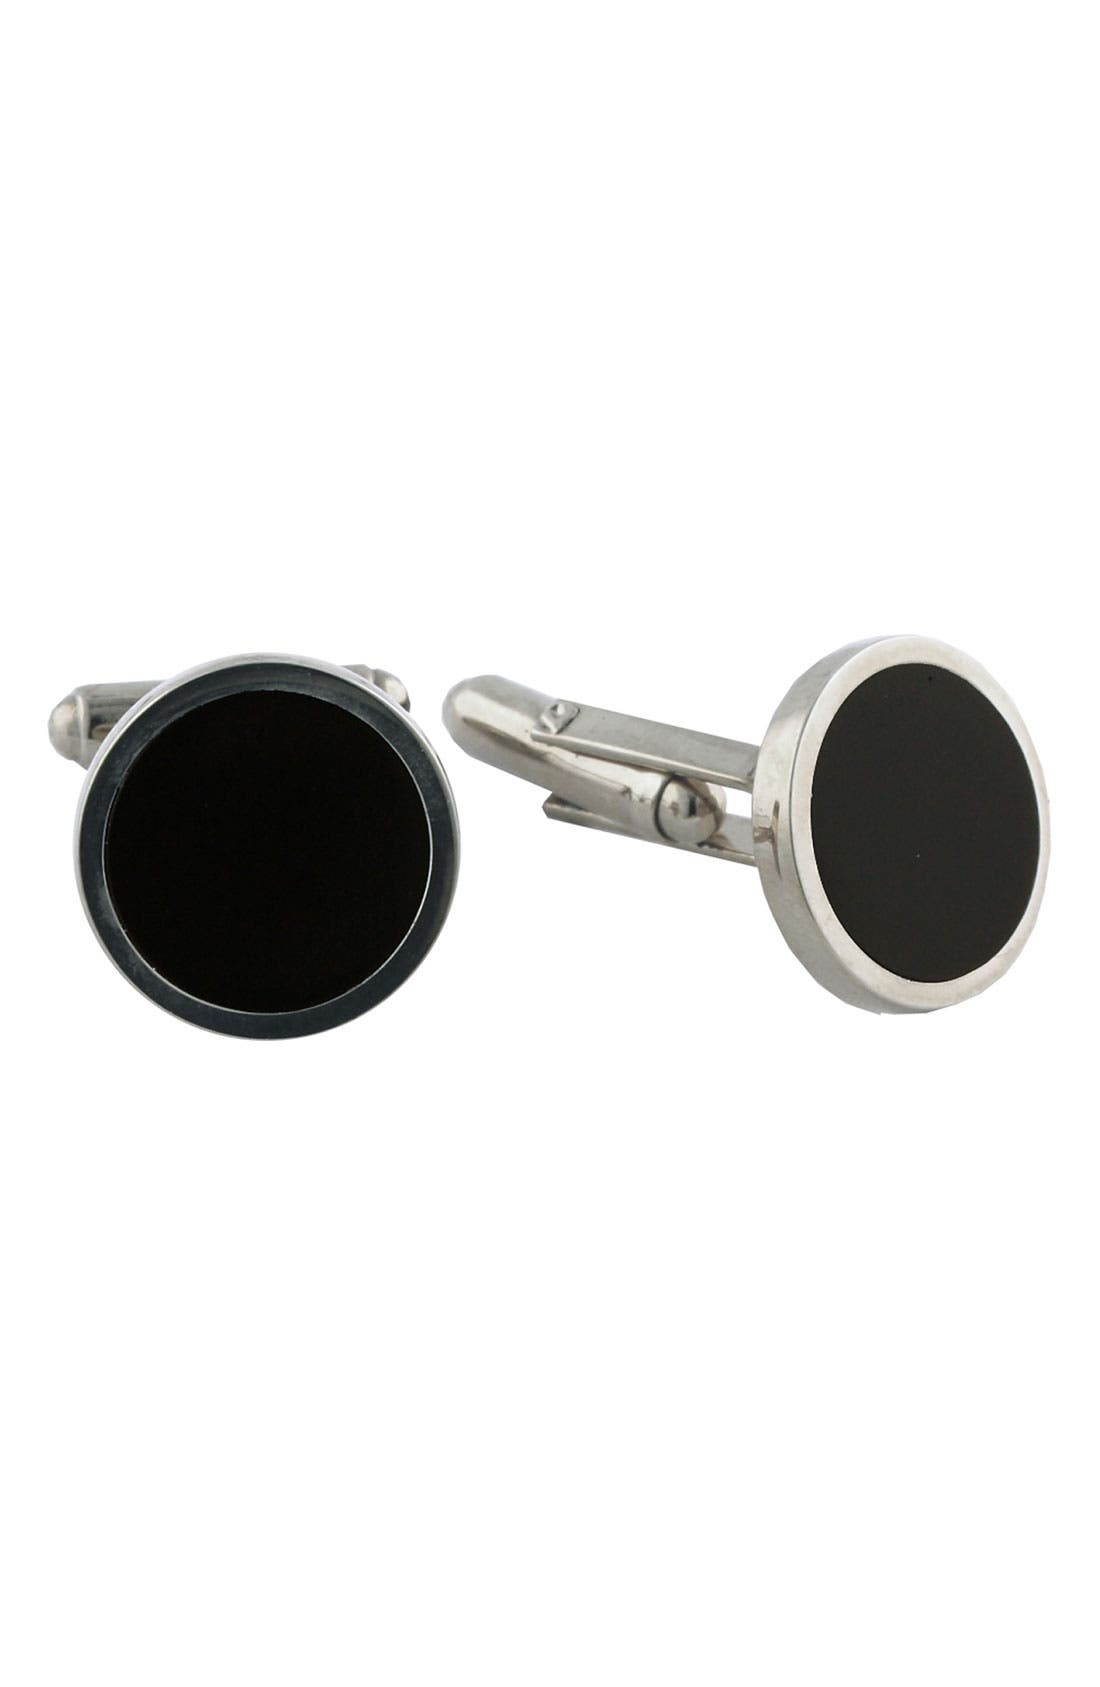 Main Image - David Donahue Sterling Silver & Onyx Cuff Links